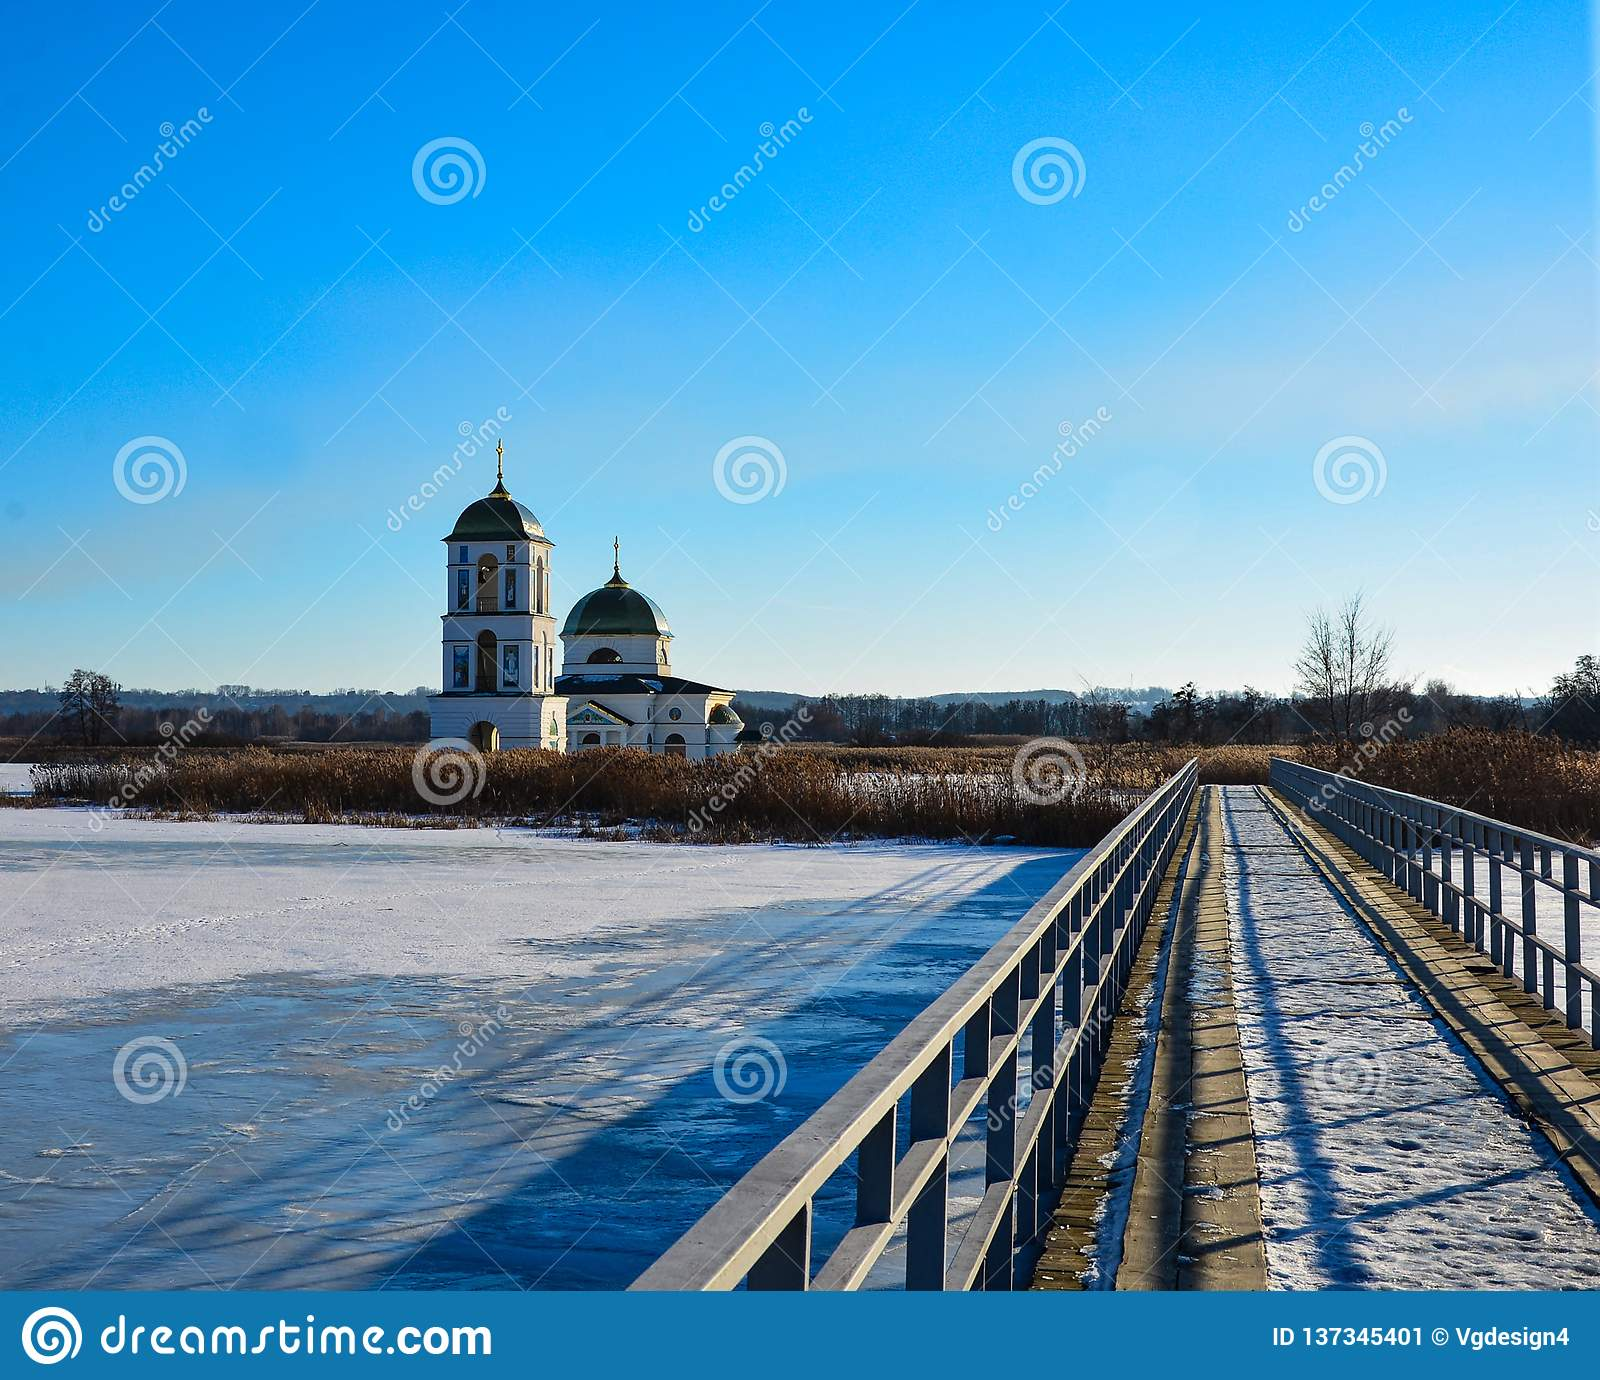 Snow-covered lake with a metal bridge towards church